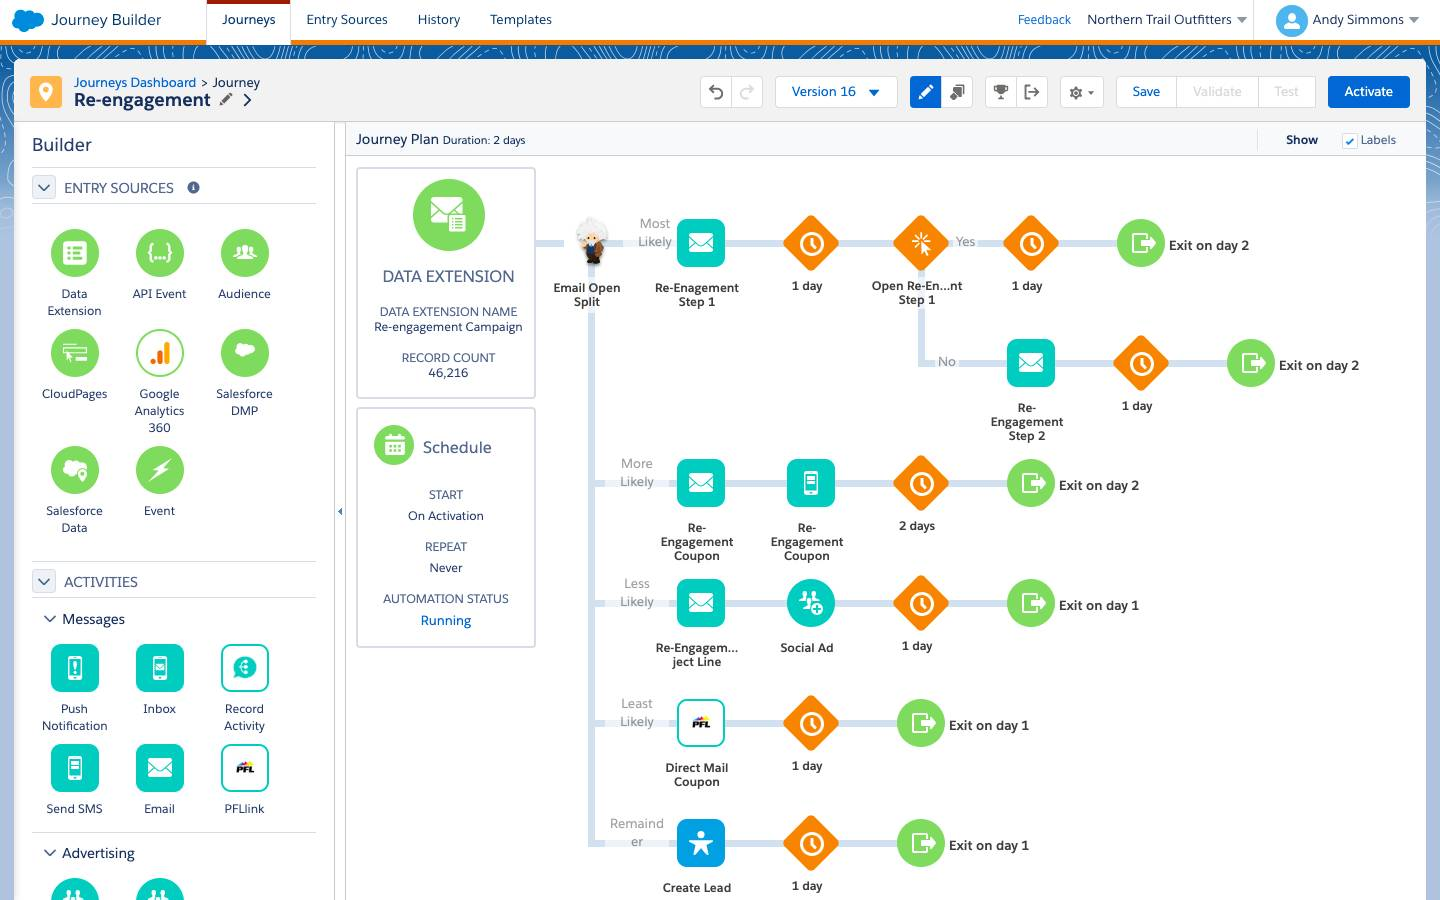 Einstein Split within Marketing Cloud Journey Builder, creating branches based on a subscriber's open likelihood and different channel engagement strategies for each branch.